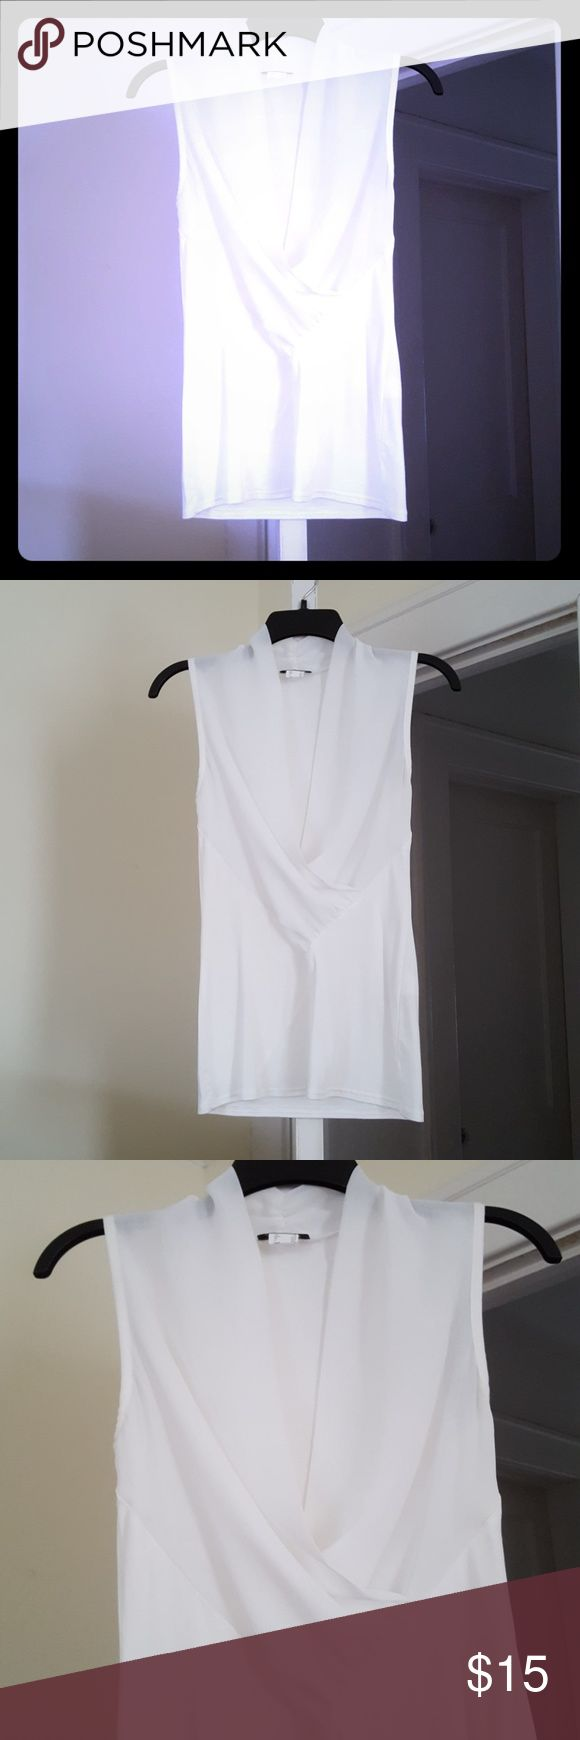 Venus sleeveless surplice top Beautiful lightweight white surplice top is soft and slightly sheer up top. I ordered this and never wore it so it's in perfect condition. Simple yet stunning. Venus Tops Blouses